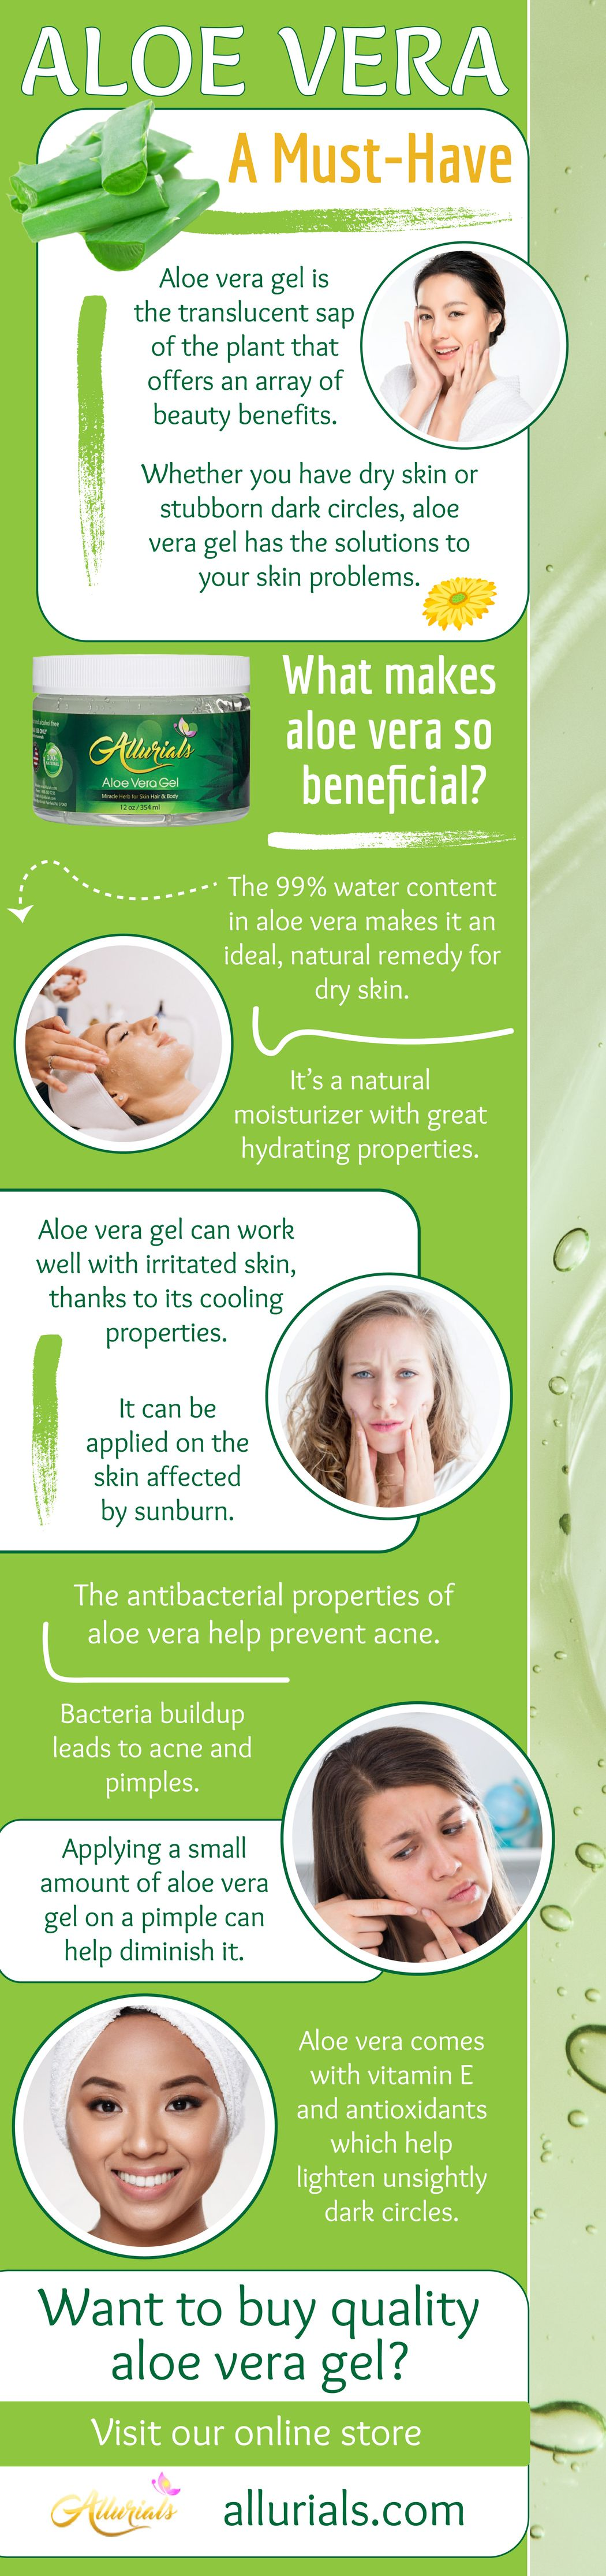 Aloe Vera: A Must-Have